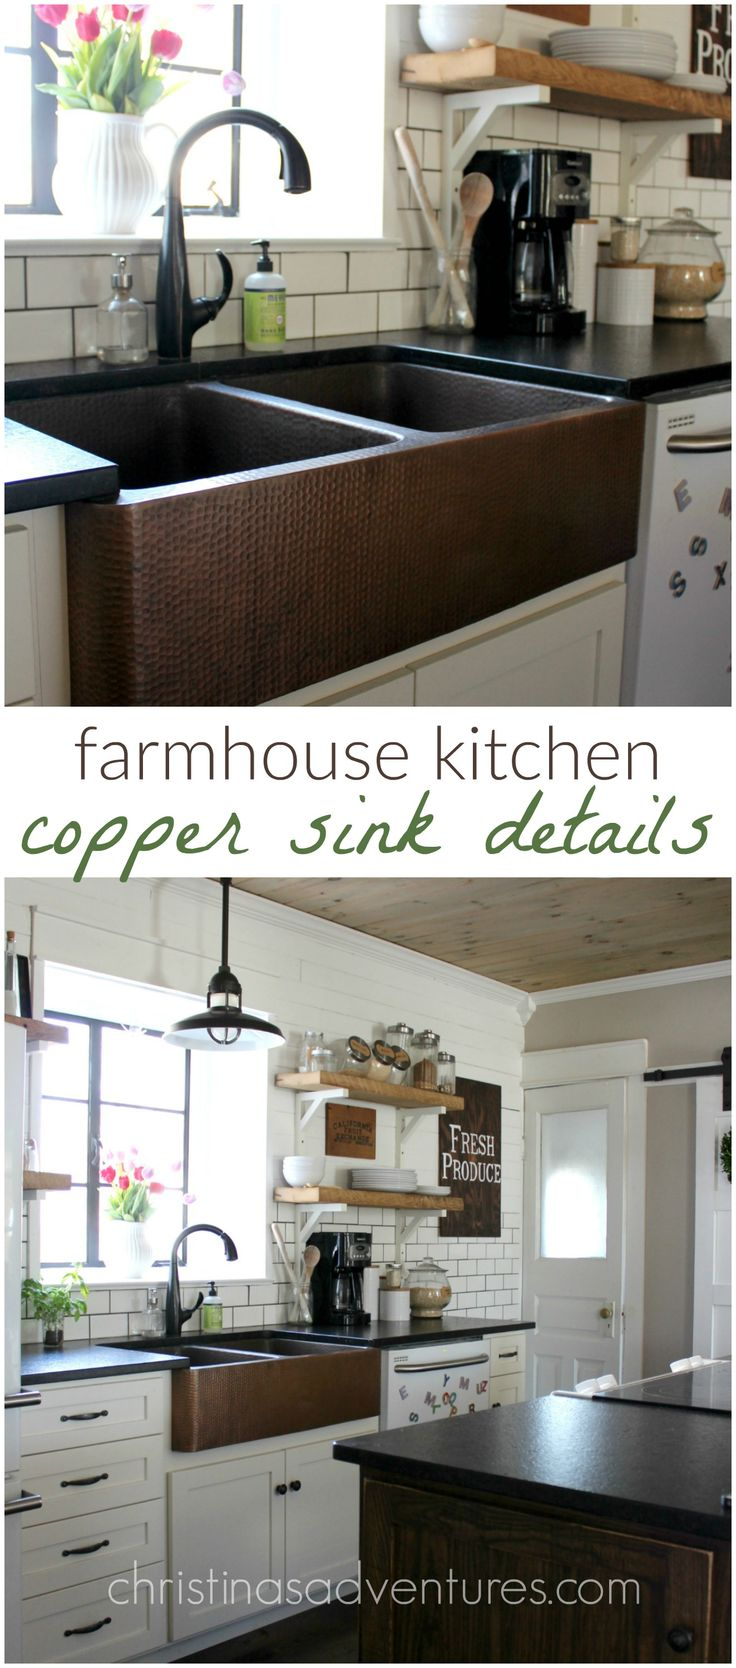 kitchen sink stores 40 best 10 steps to a farmhouse kitchen images on 2919